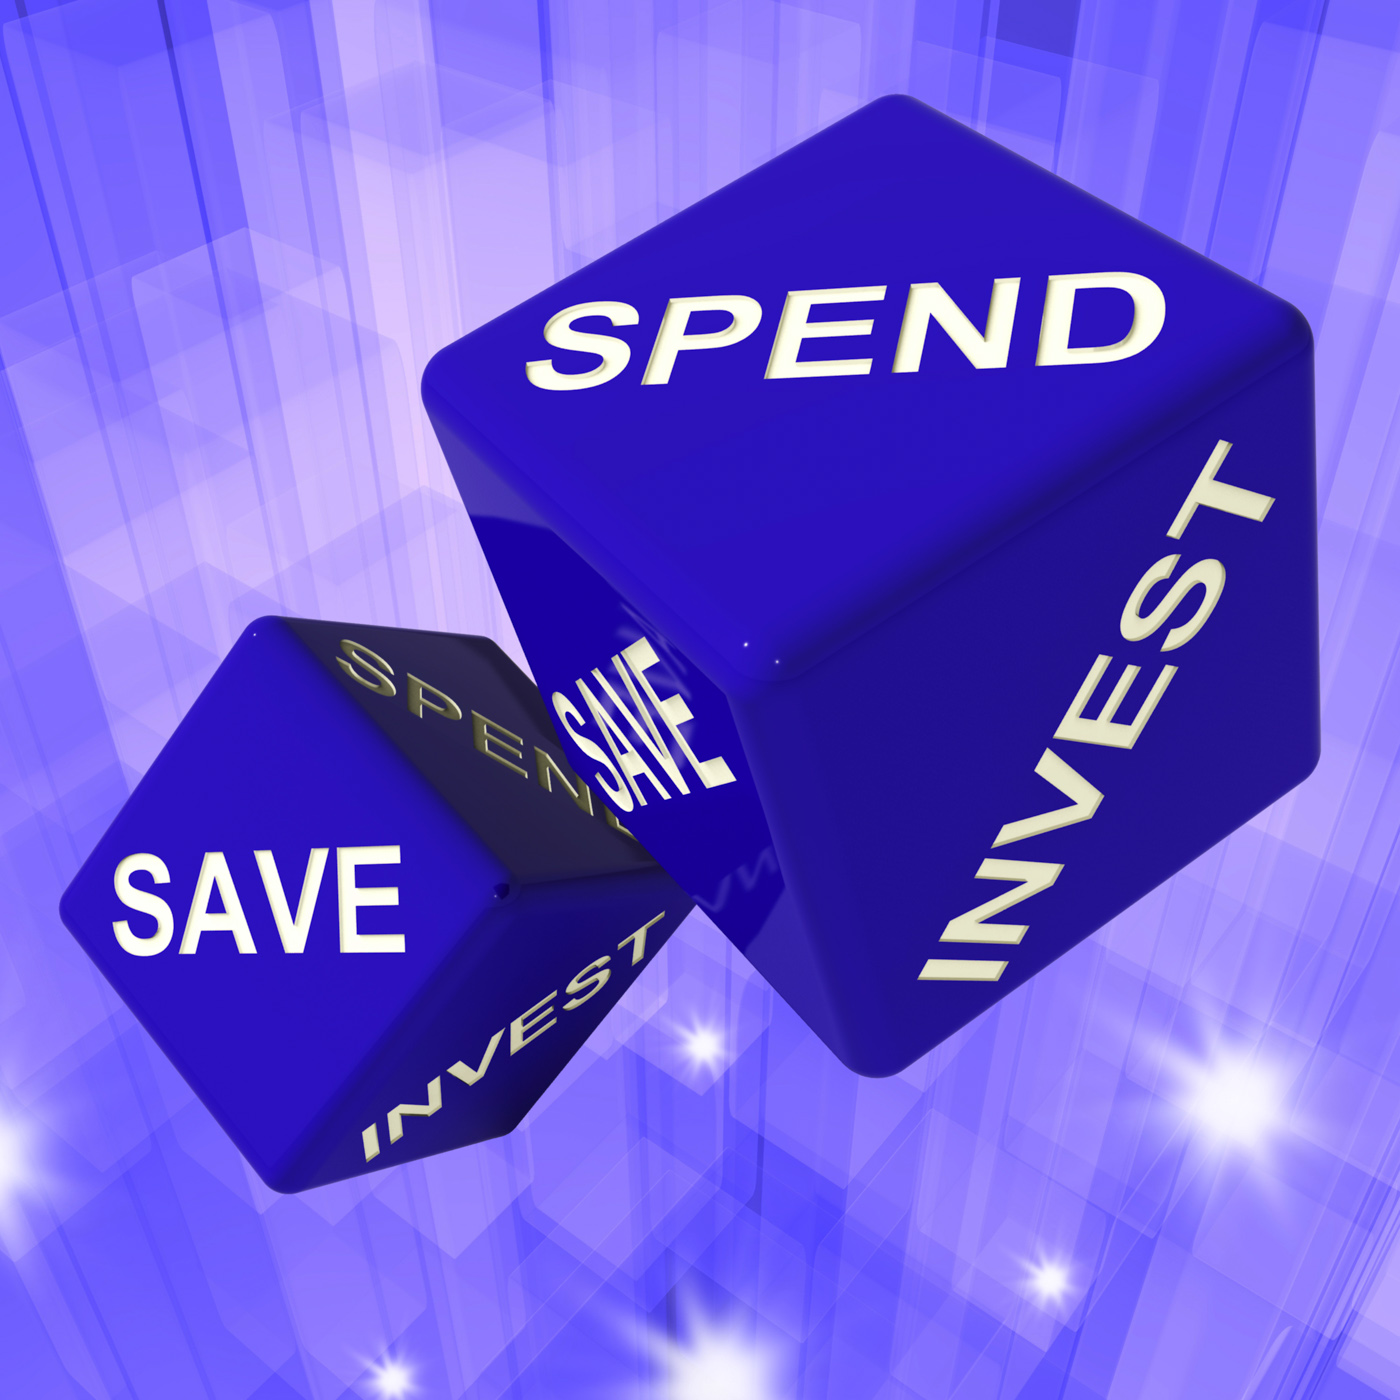 Spend, save, invest dice background shows finances and debts photo